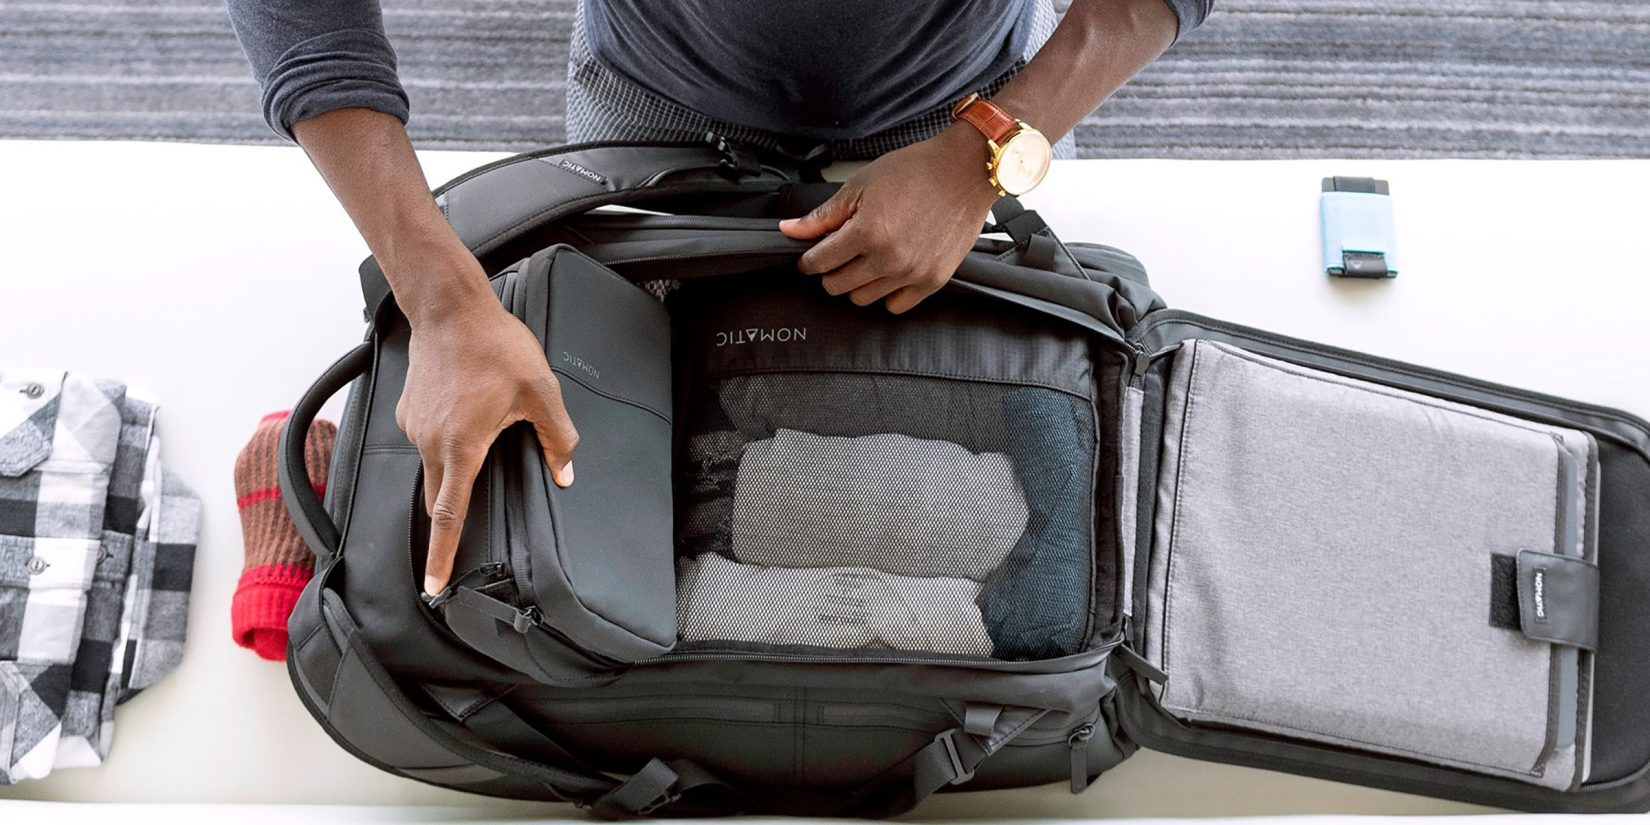 Packing Cubes: The Travel Accessory To Pack Like A Pro